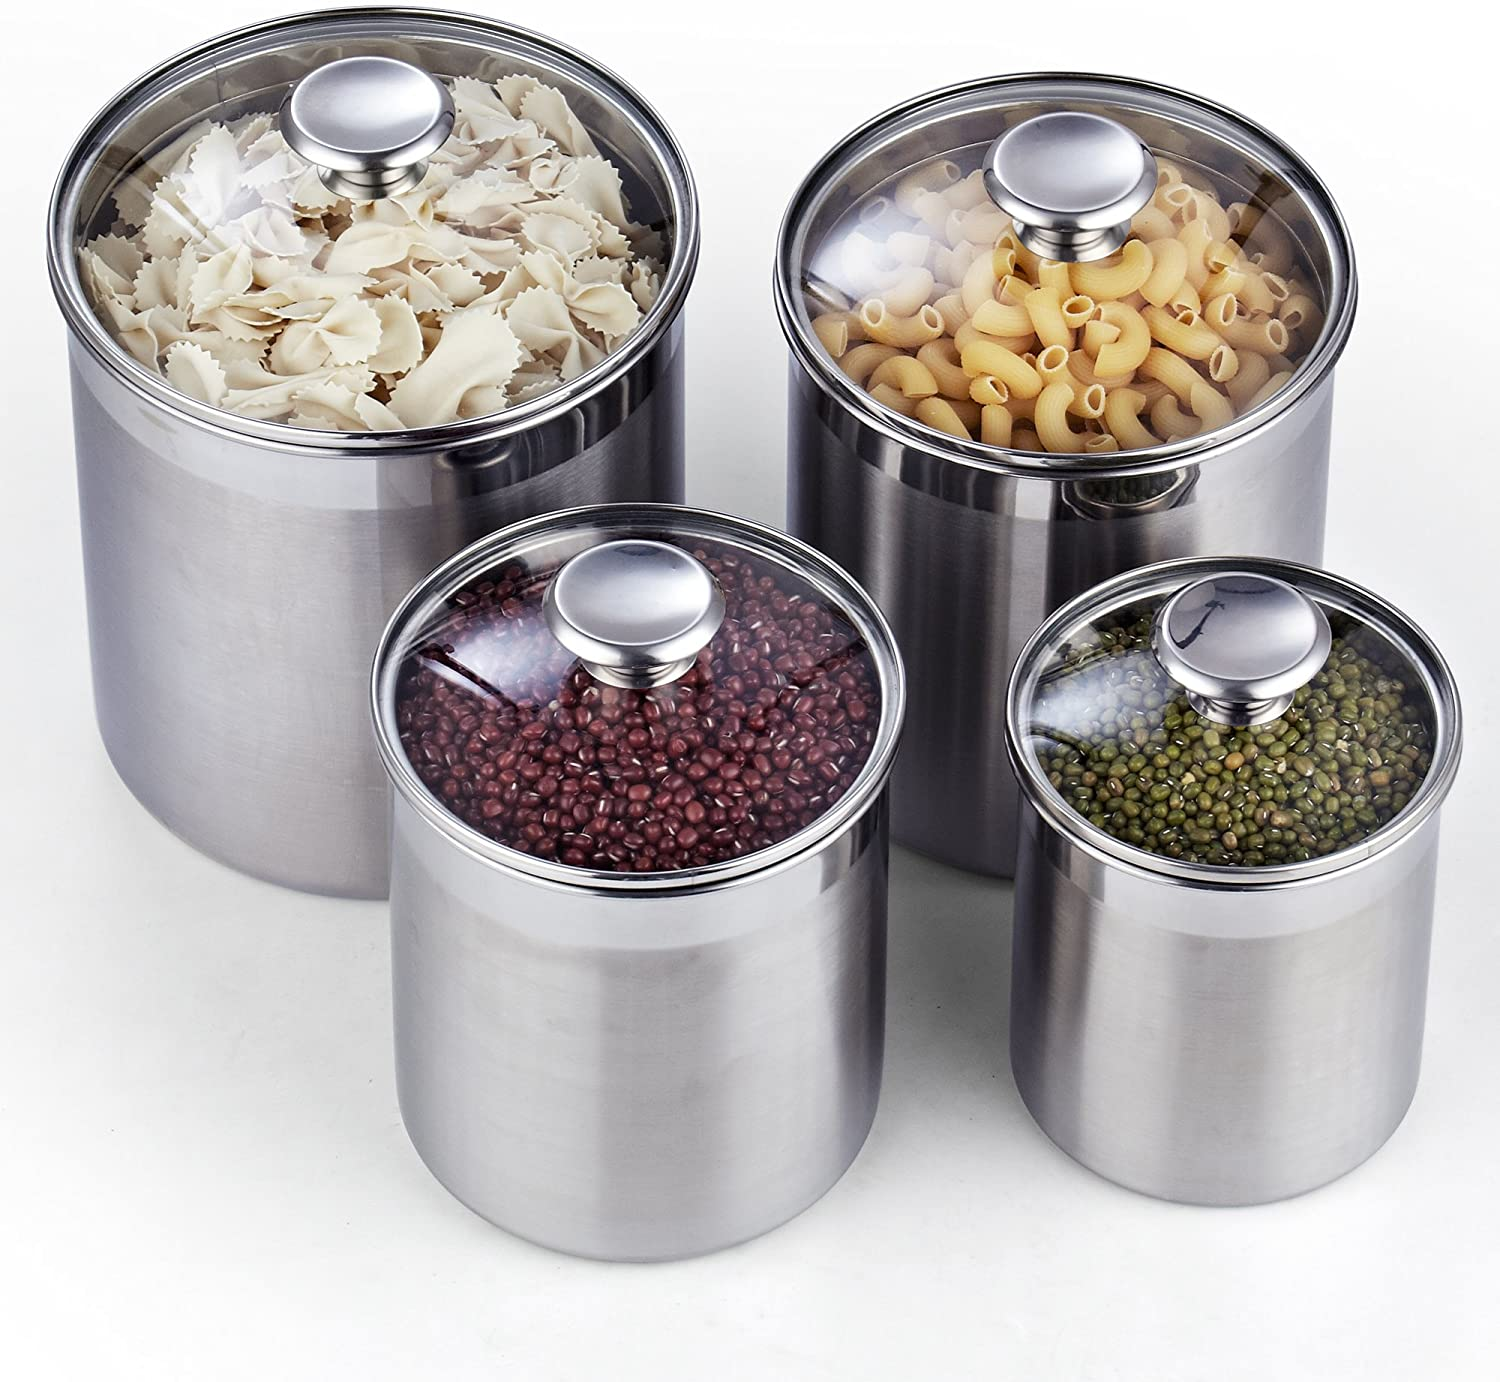 Cooks Standard 4-Piece Canister Set, 4 pcs, Stainless Steel